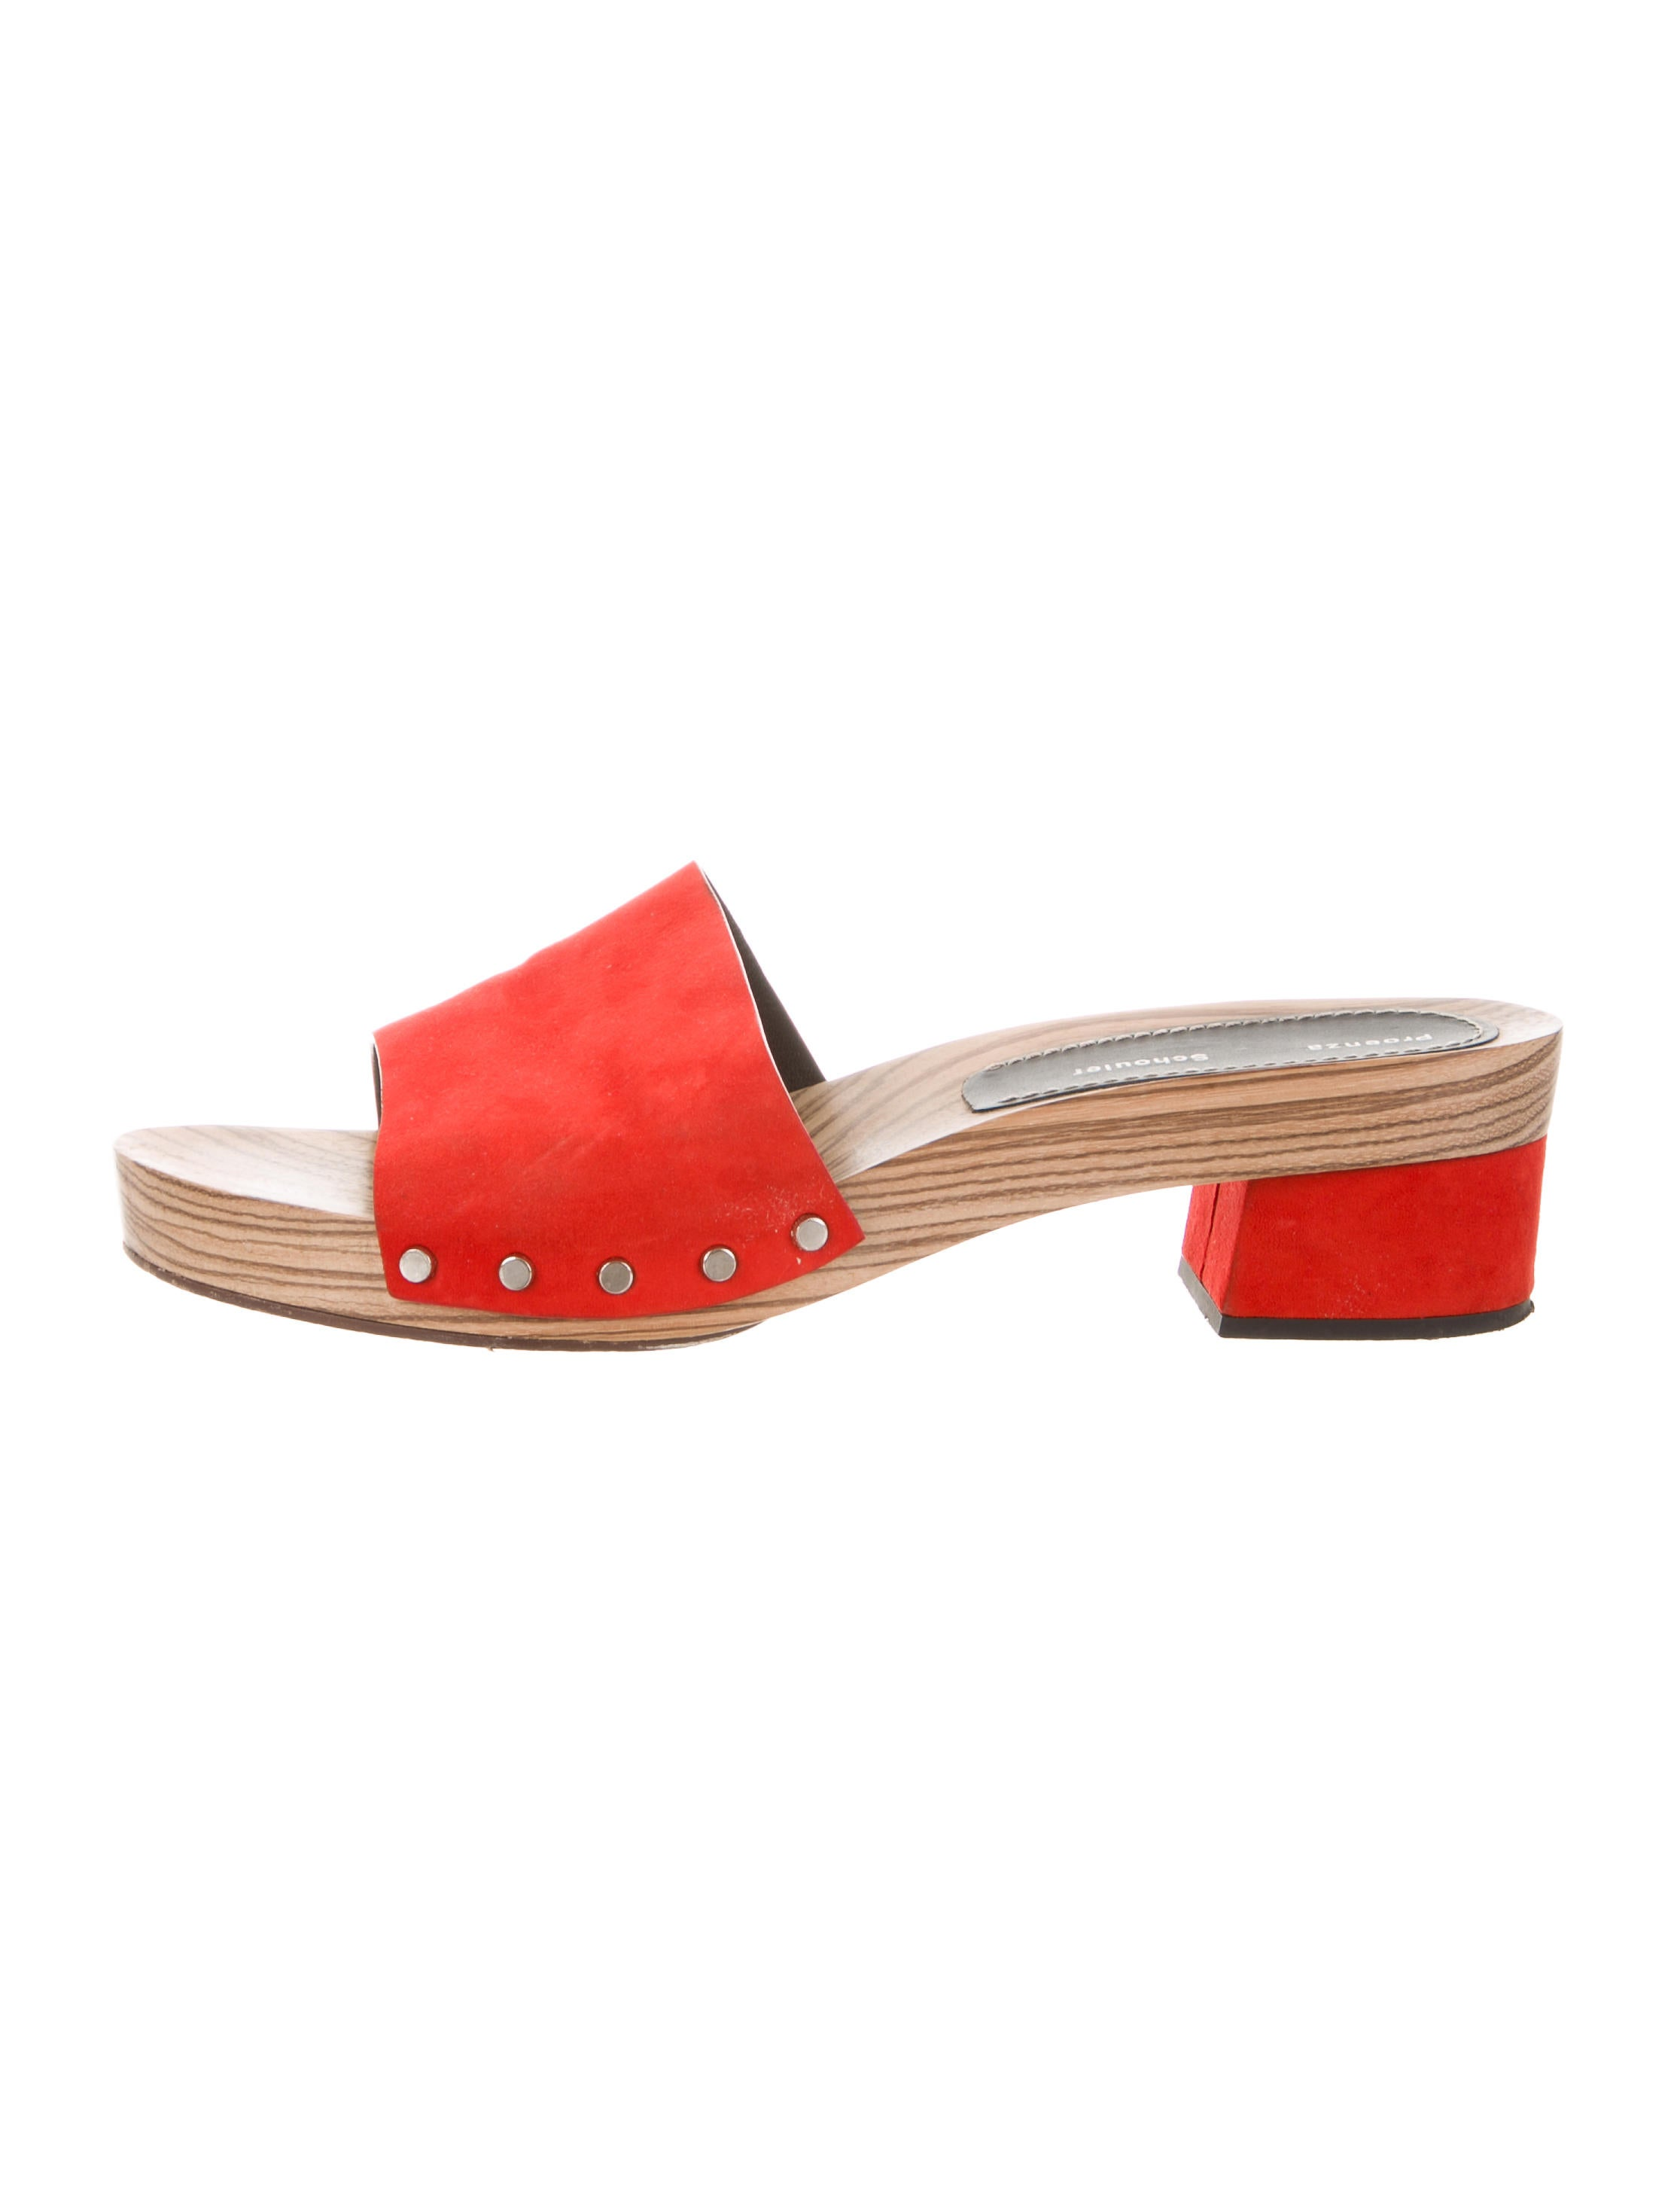 Proenza Schouler Suede Slide Sandals free shipping low price fee shipping clearance outlet locations cheapest wCnkxEhefl